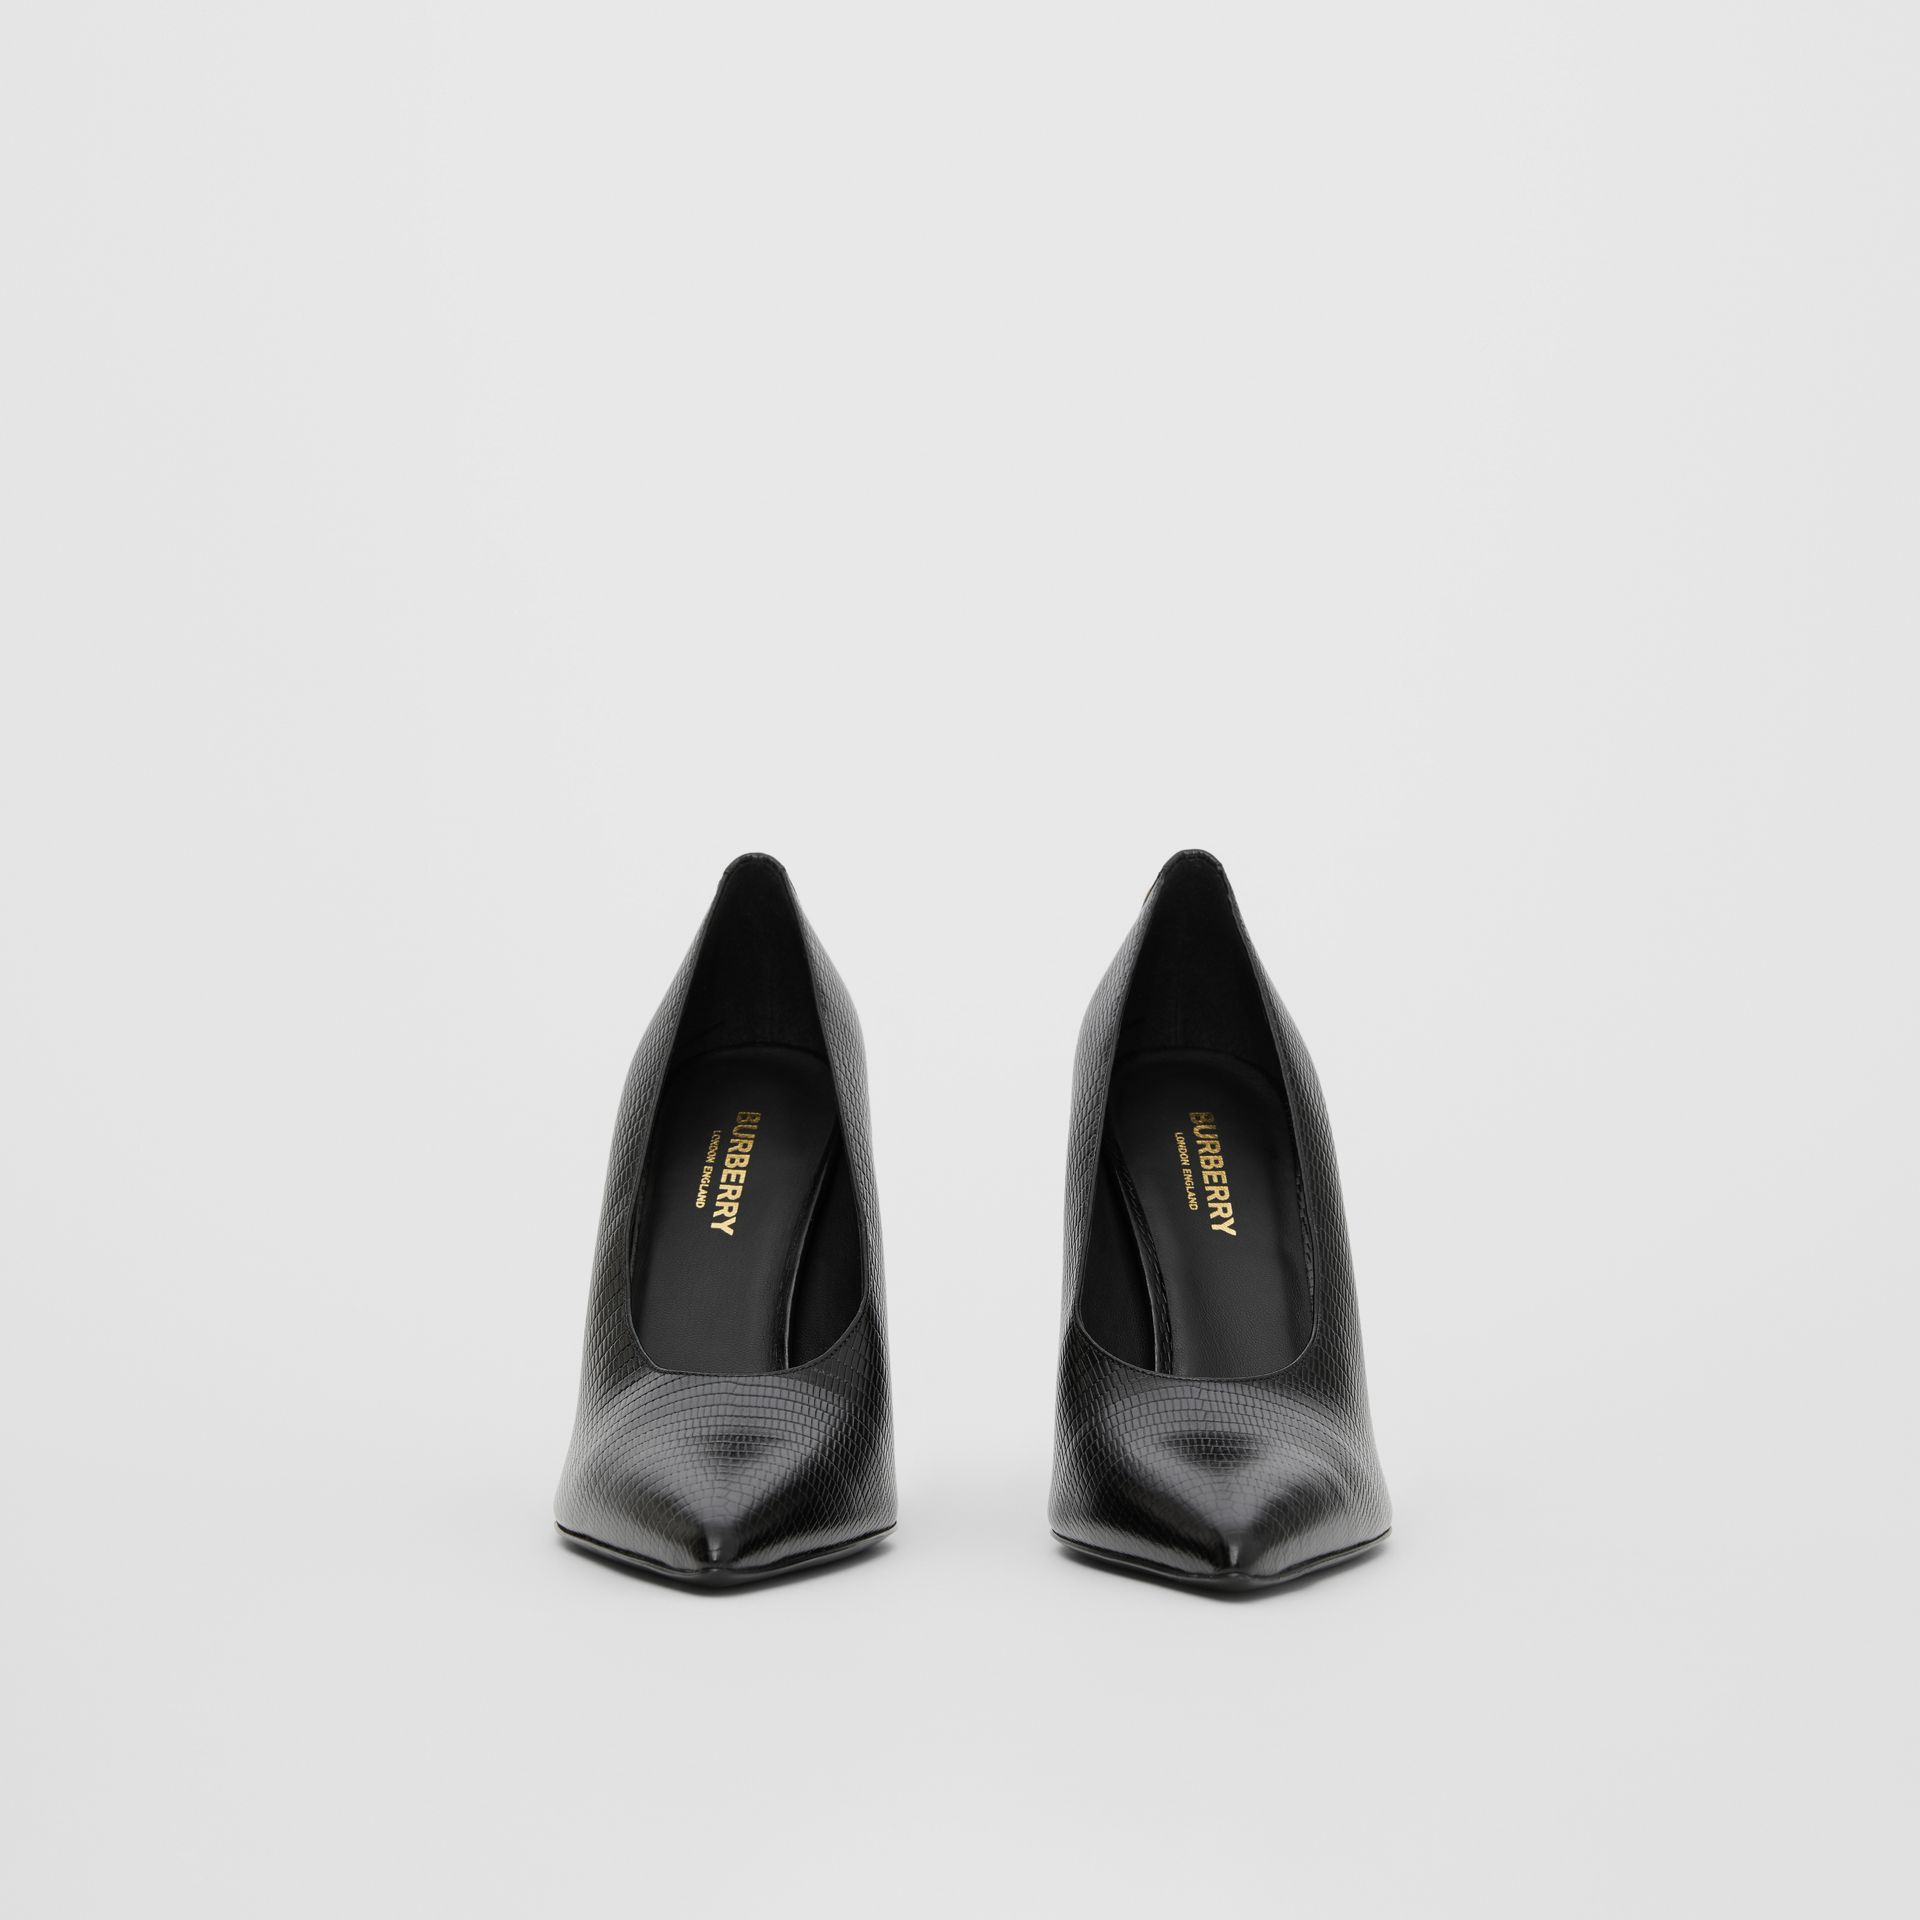 Stud Detail Embossed Leather Point-toe Pumps in Black - Women | Burberry Hong Kong S.A.R - gallery image 3